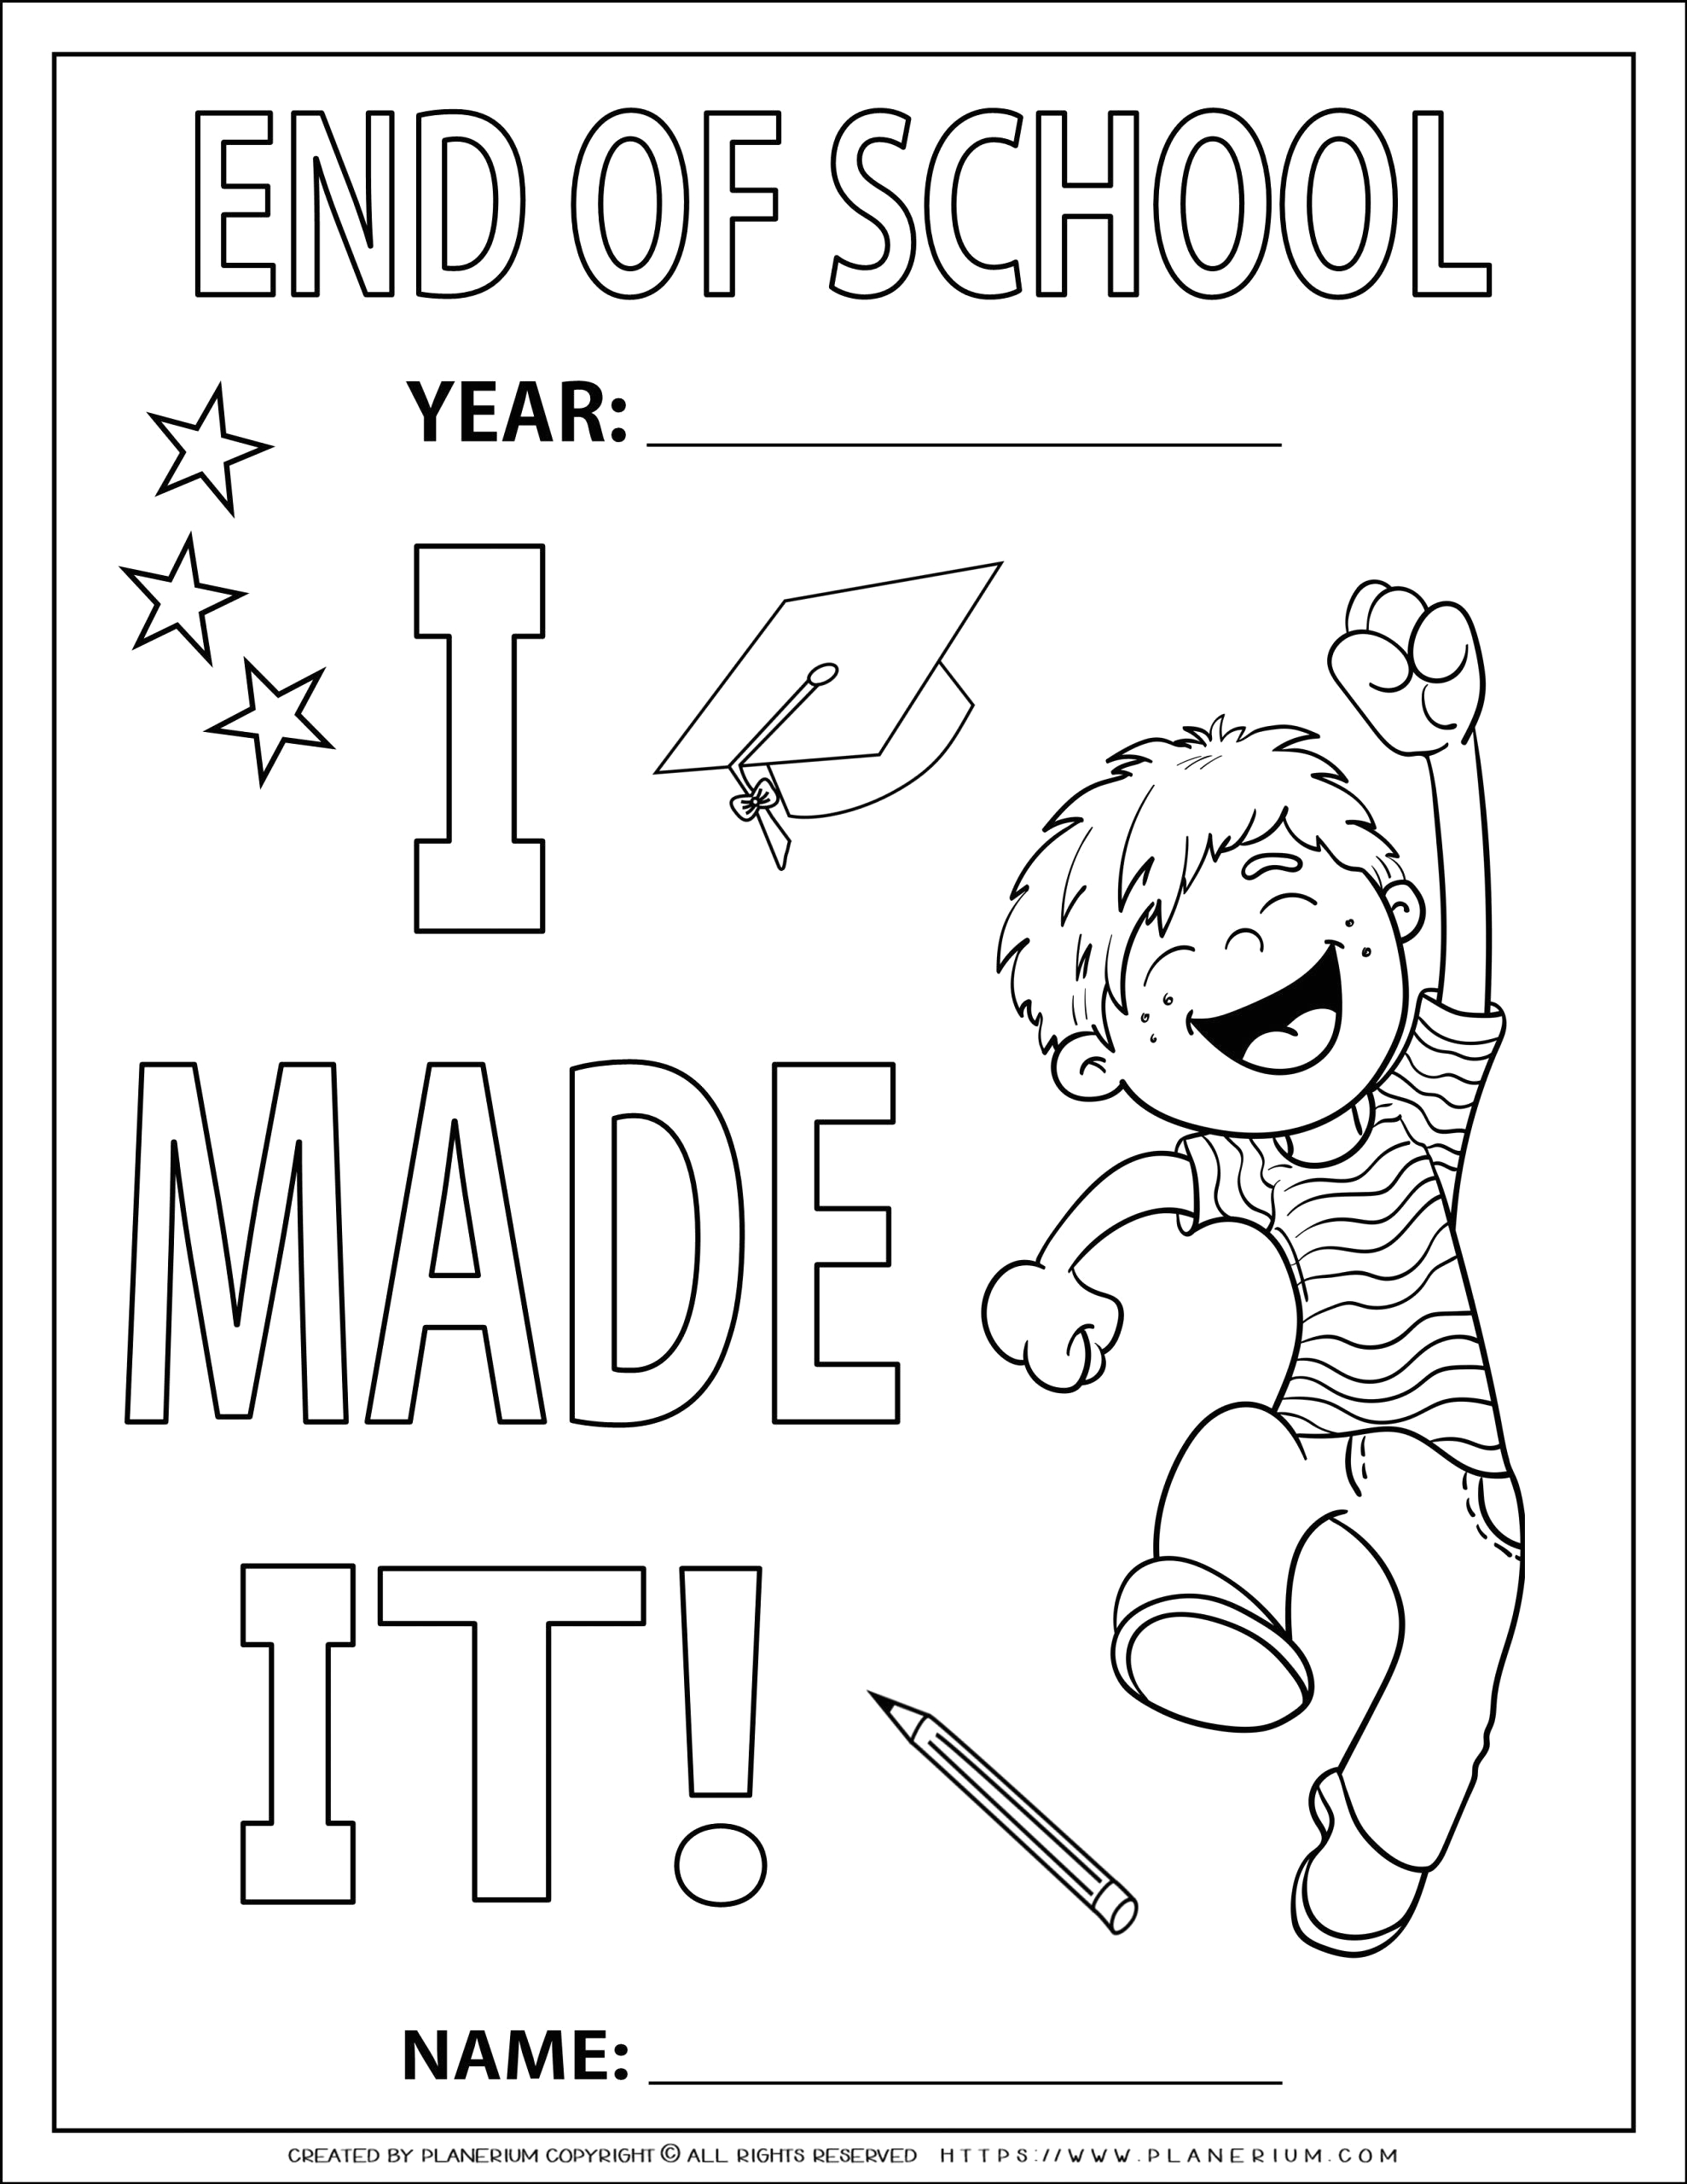 Coloring Pages for End Of School Year End Of Year Coloring Page I Made It for A Boy